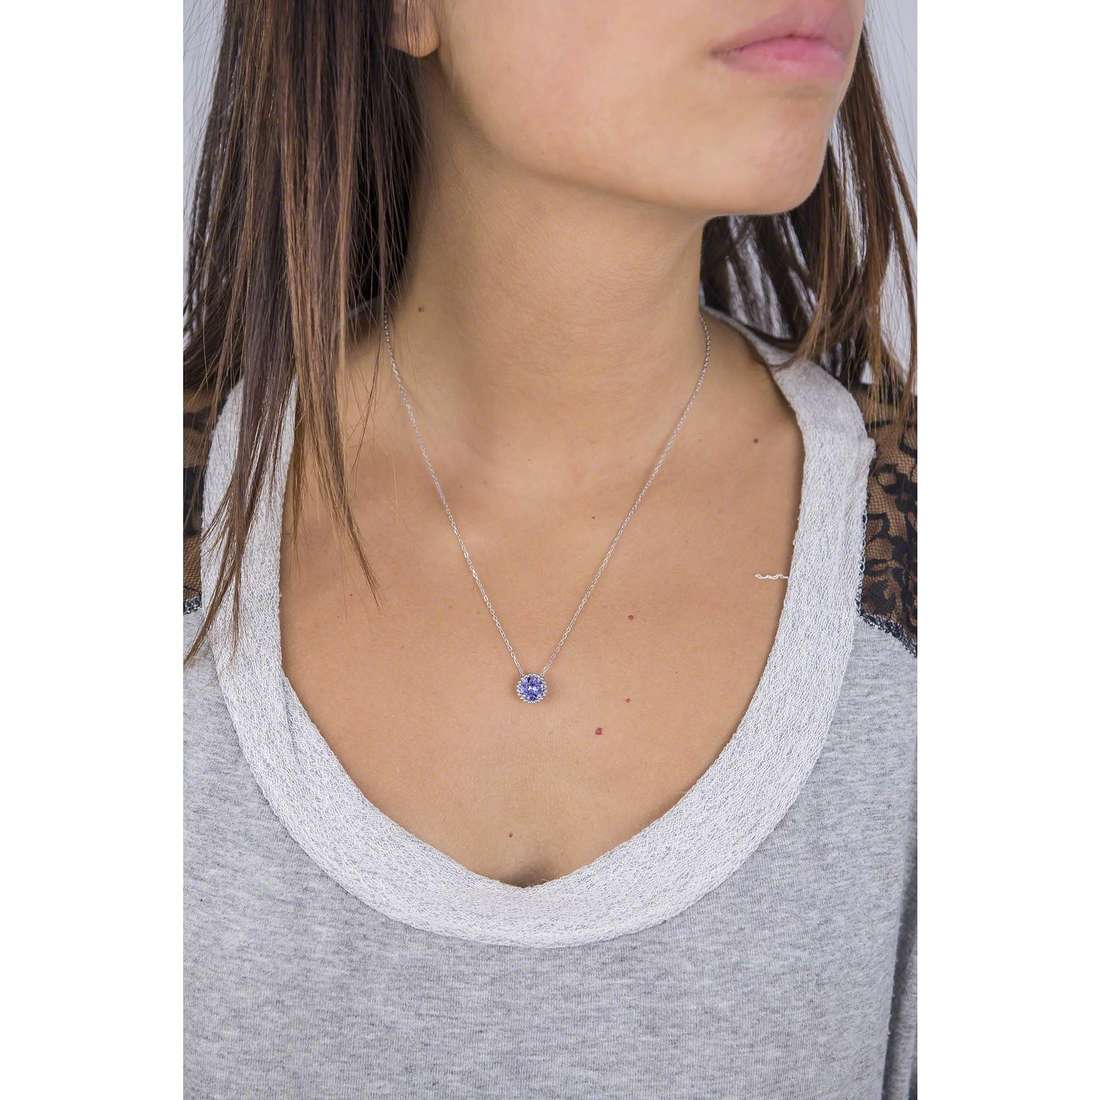 Brosway necklaces Princess woman G9PN05 indosso